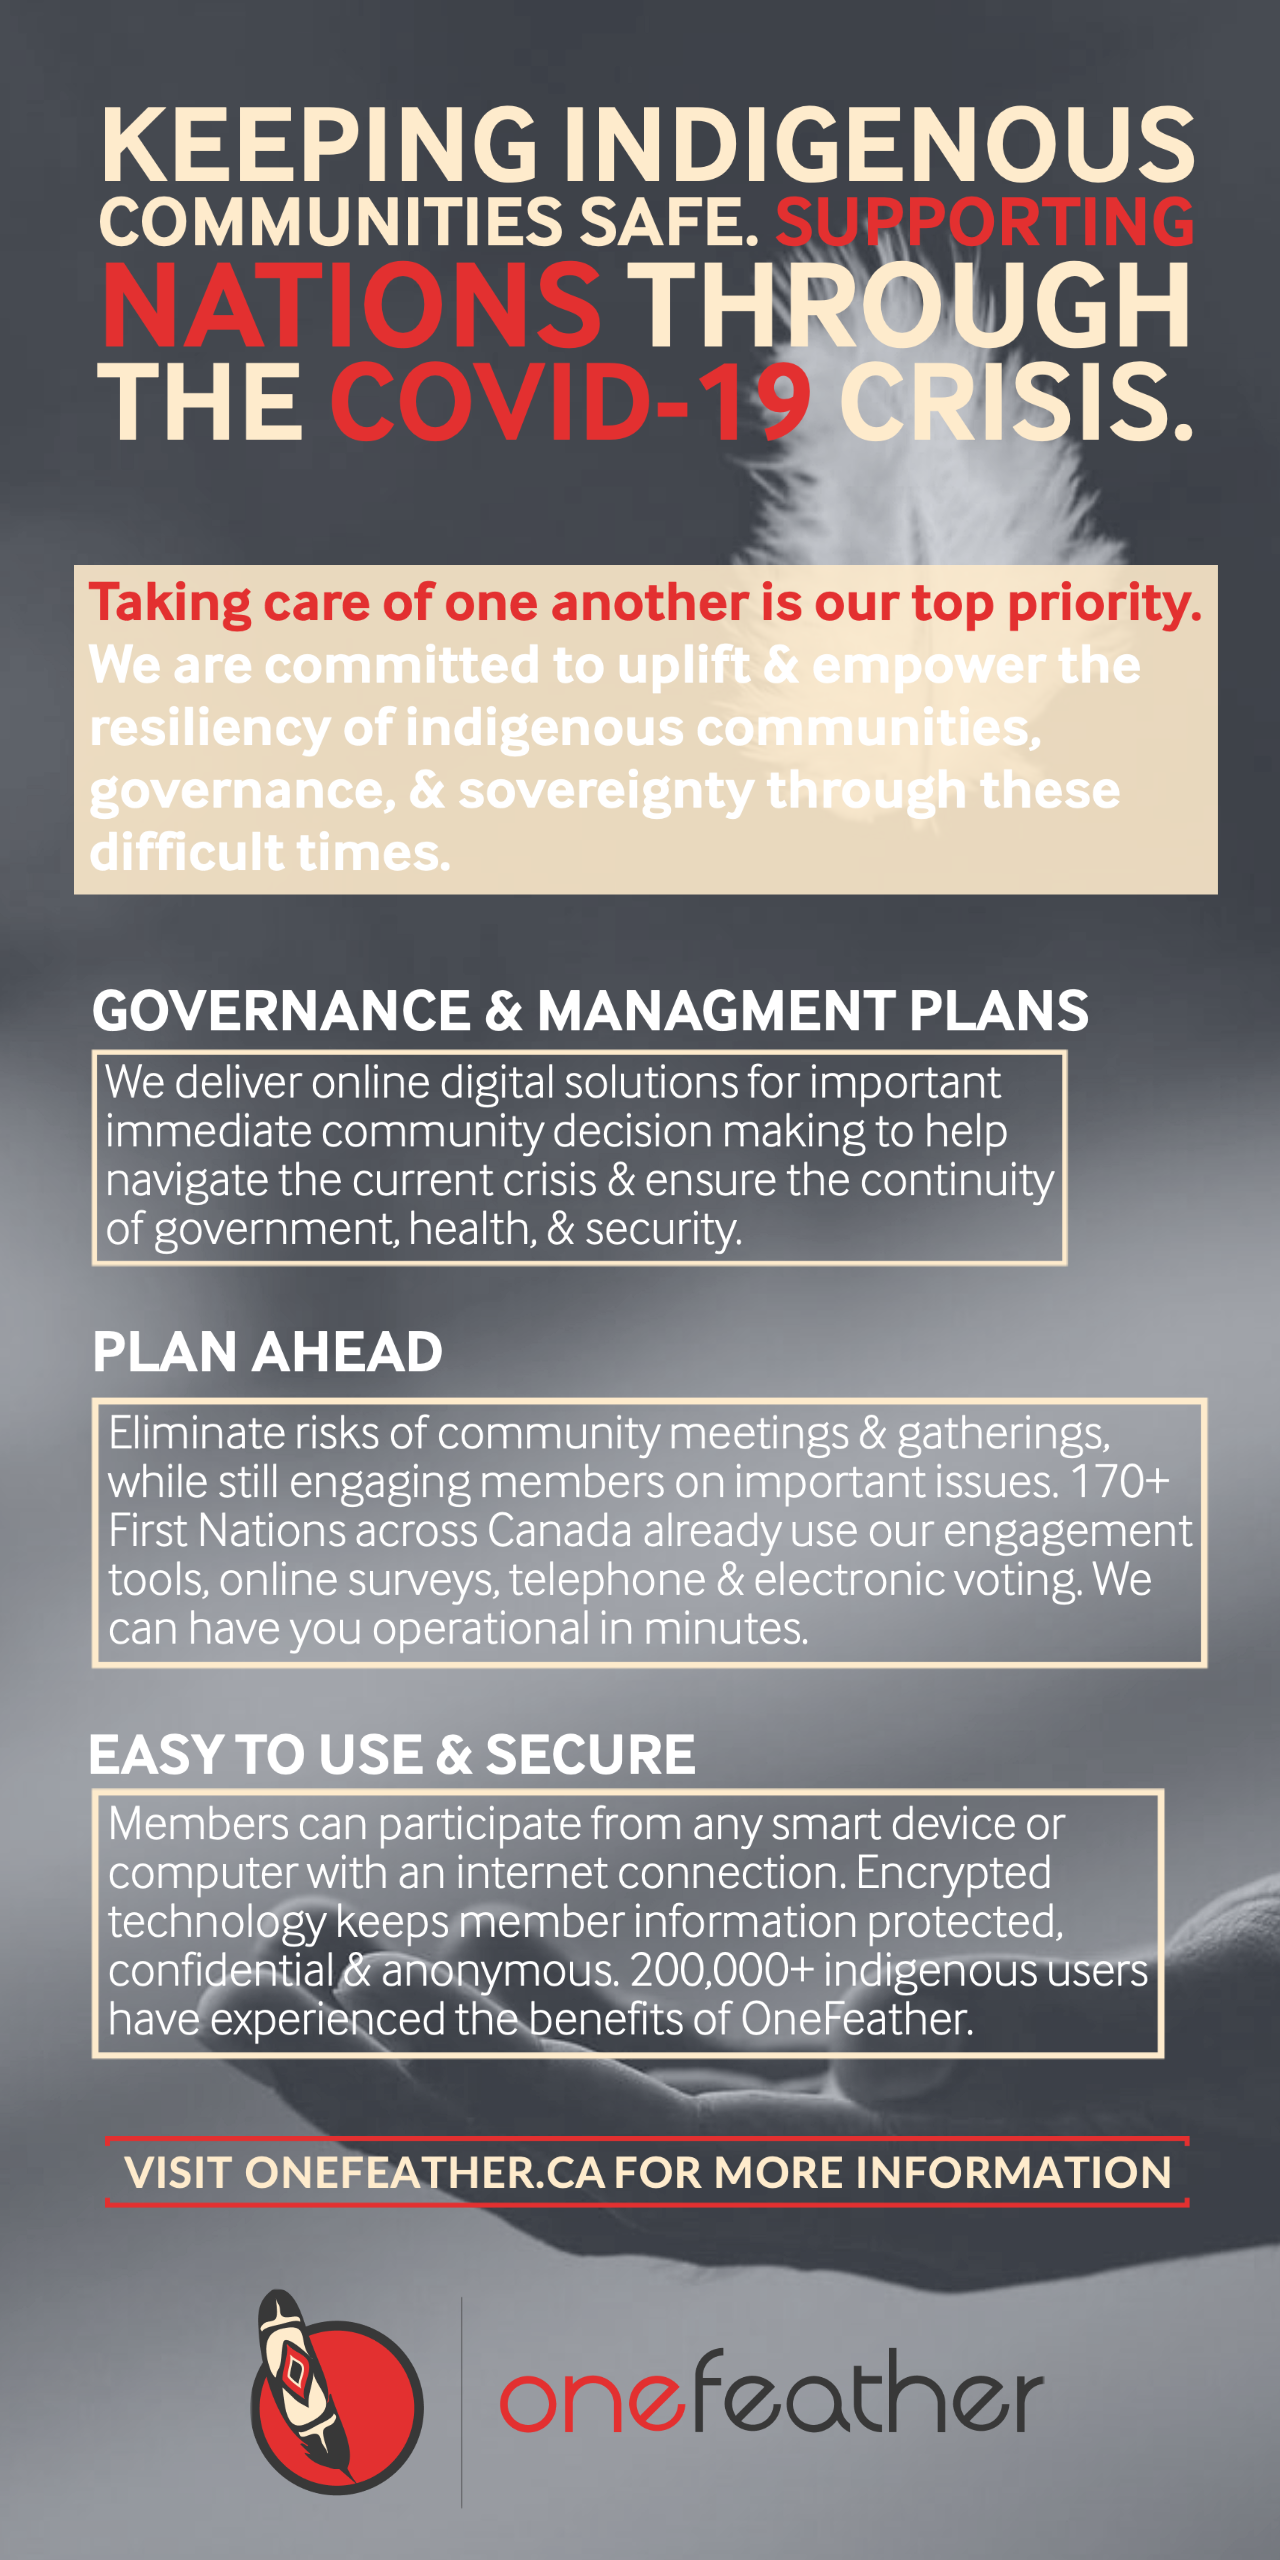 Keeping Indigenous communities safe through the COVID-19  crisis & supporting Nations.